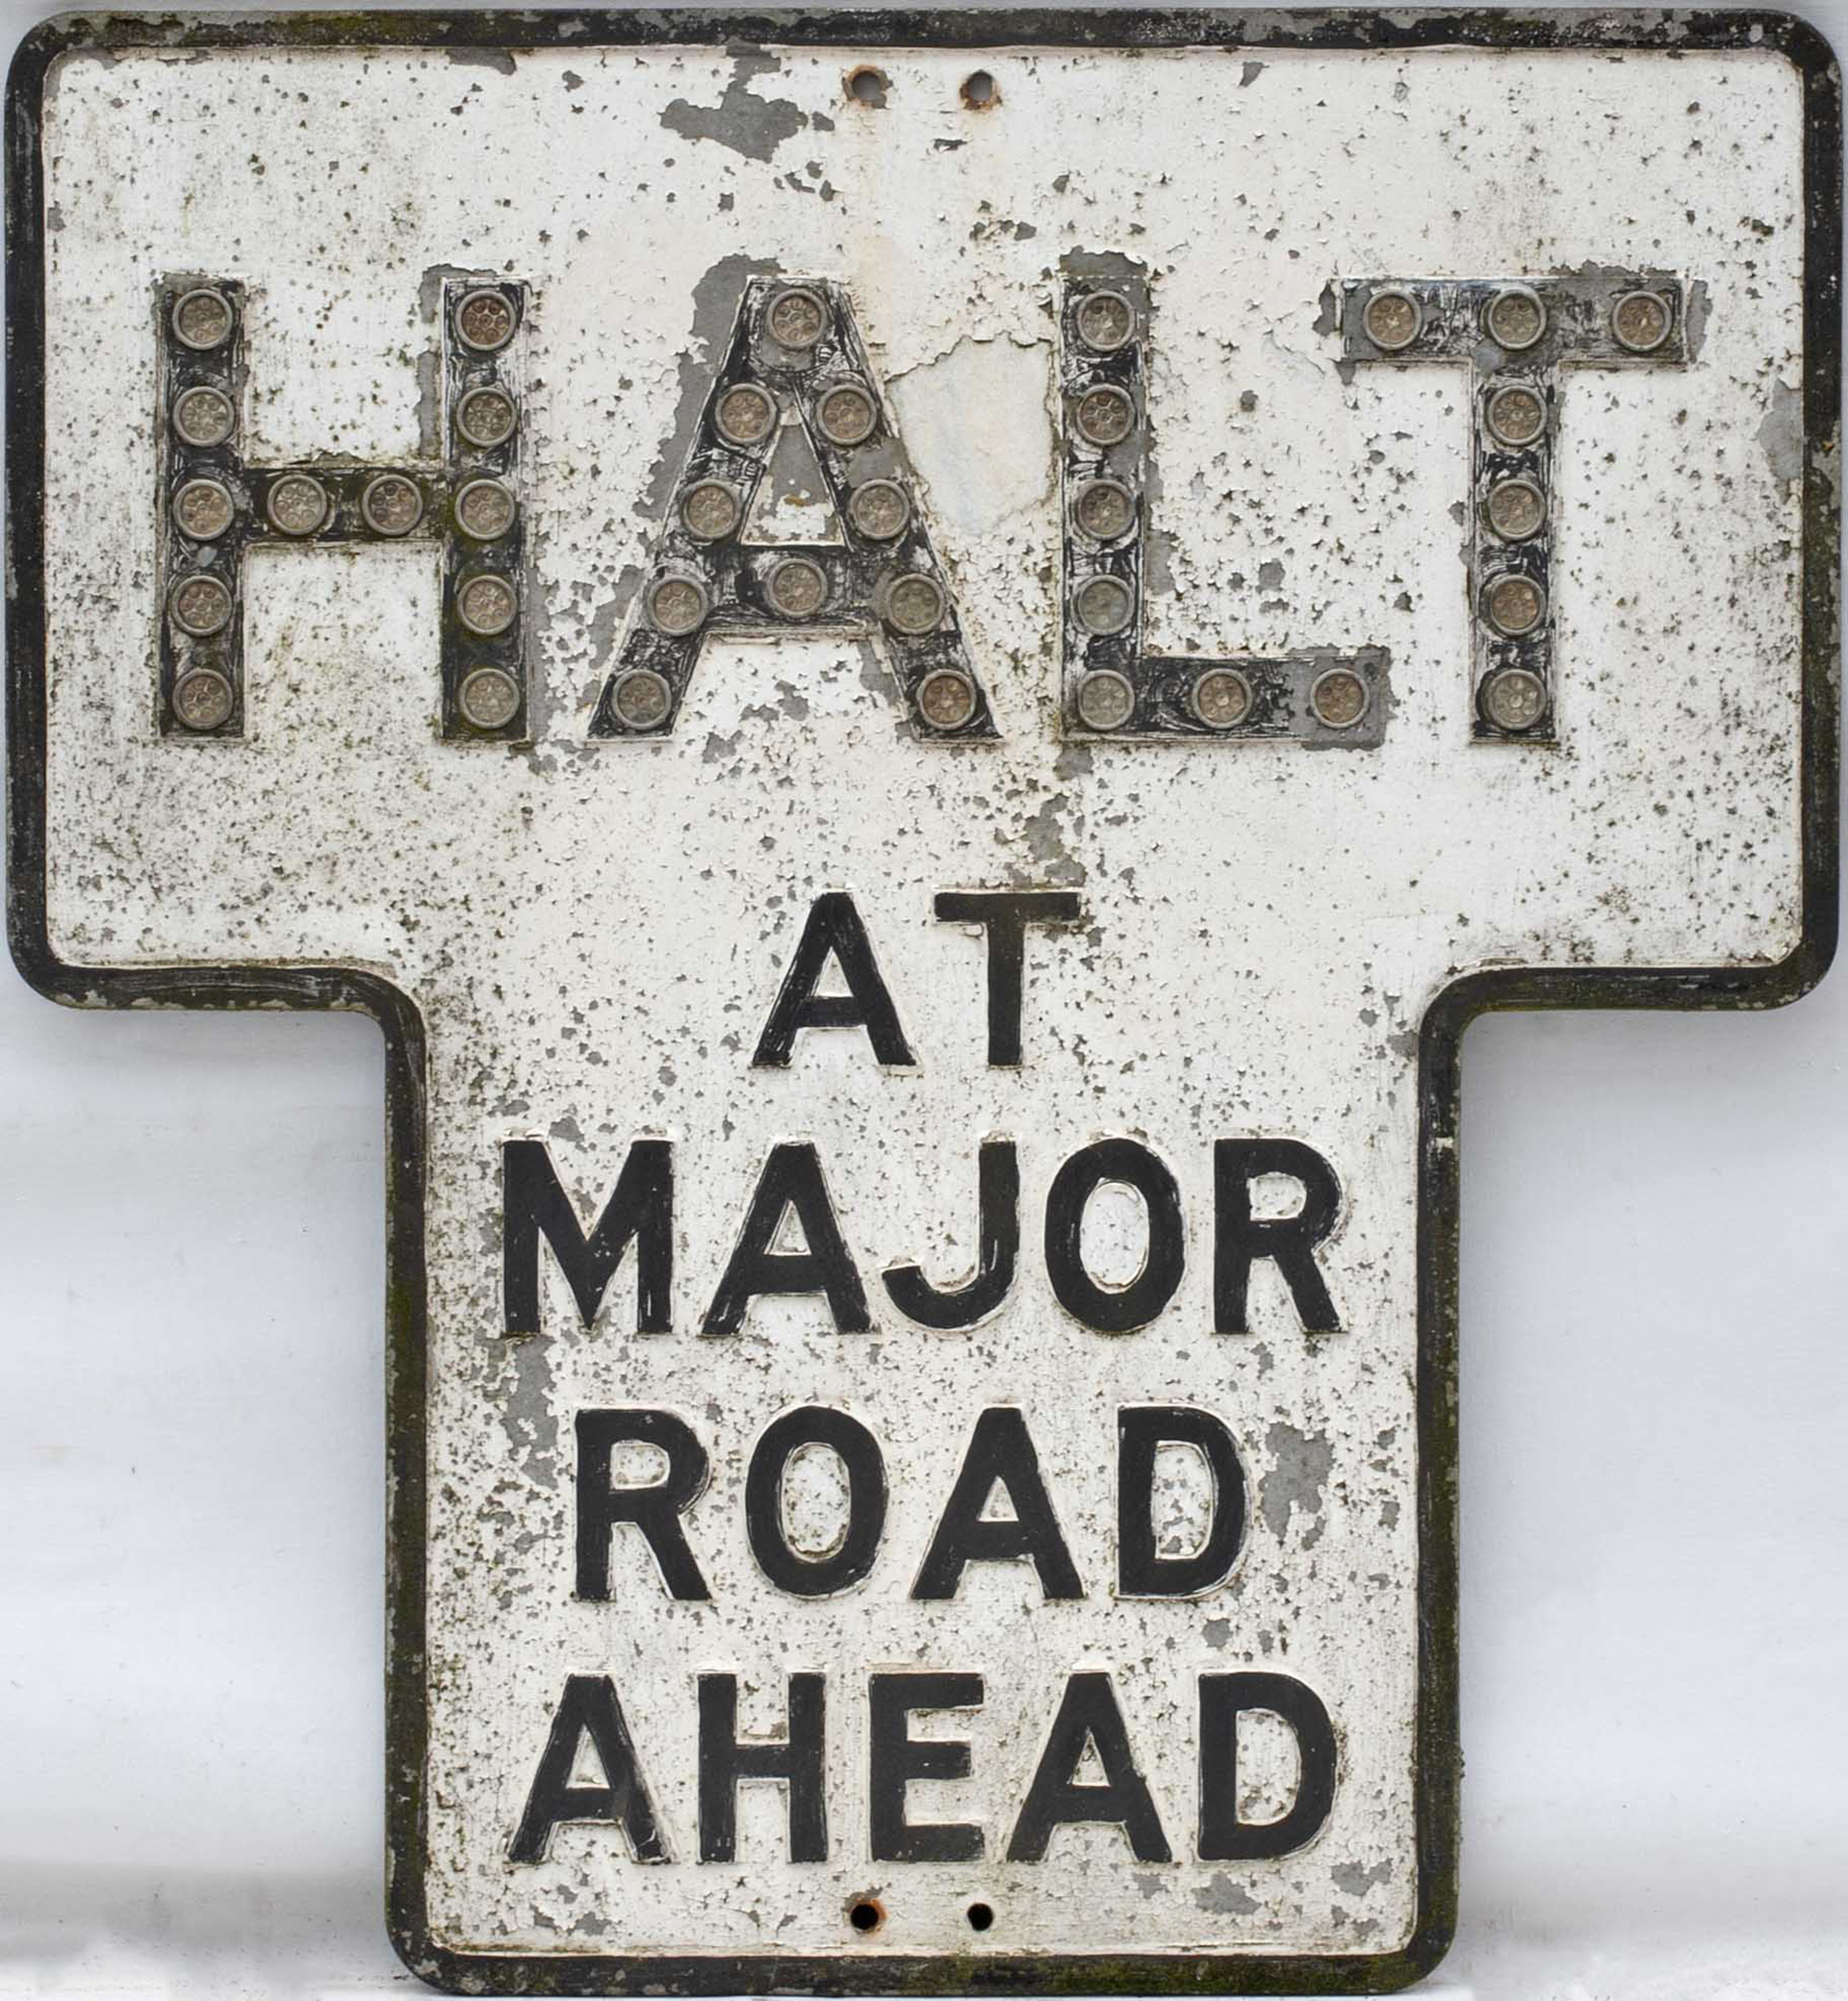 Road sign HALT MAJOR ROAD AHEAD measuring 24in x 26in. Cast aluminium in as removed condition